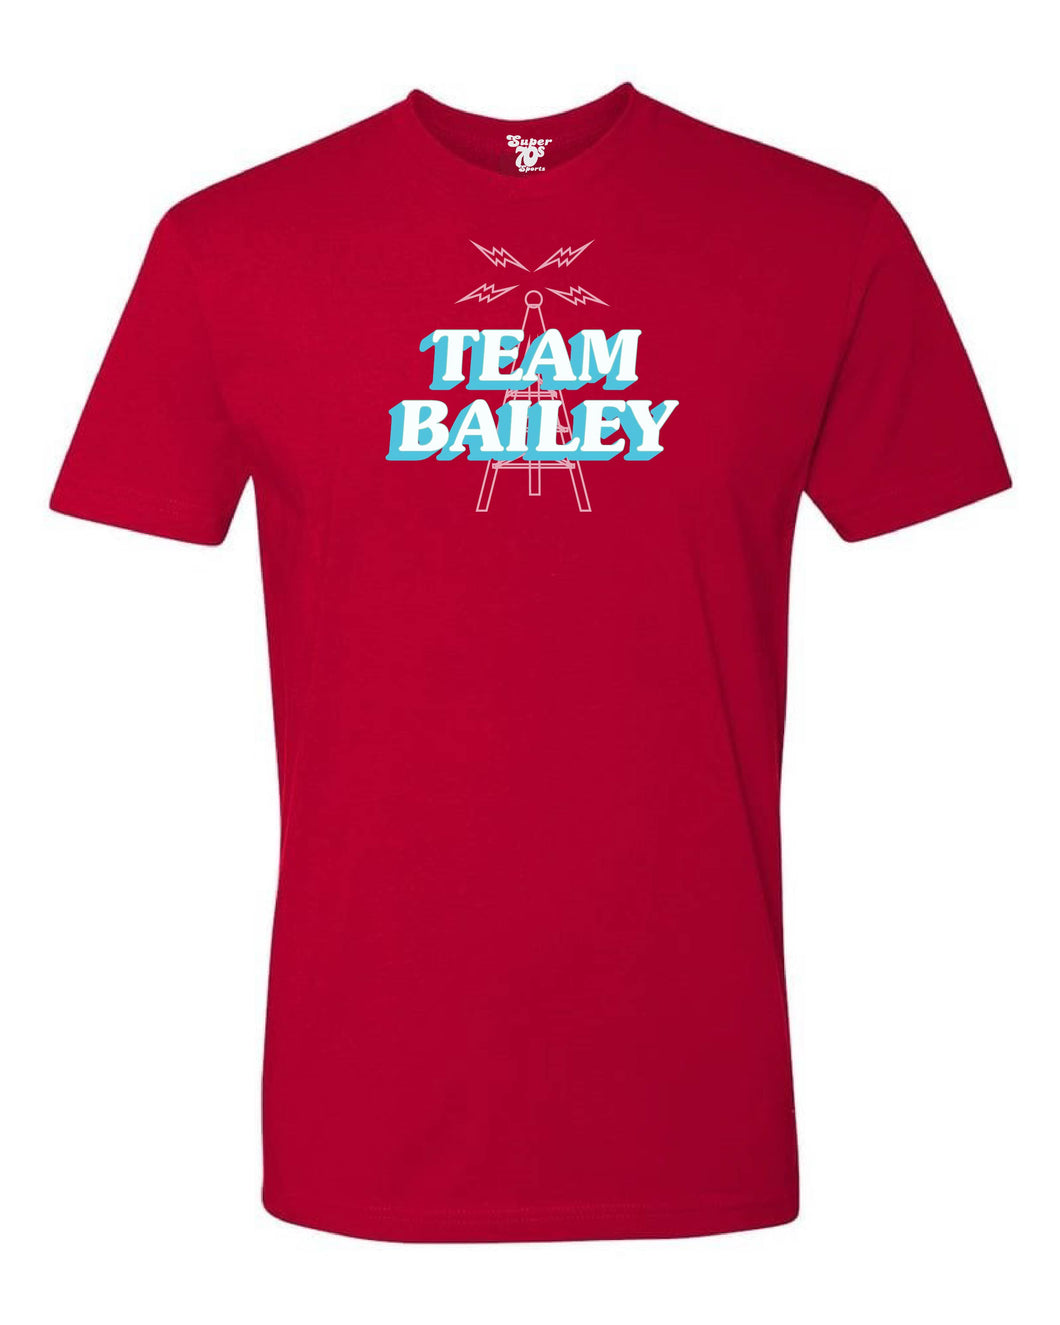 Team Bailey Tee